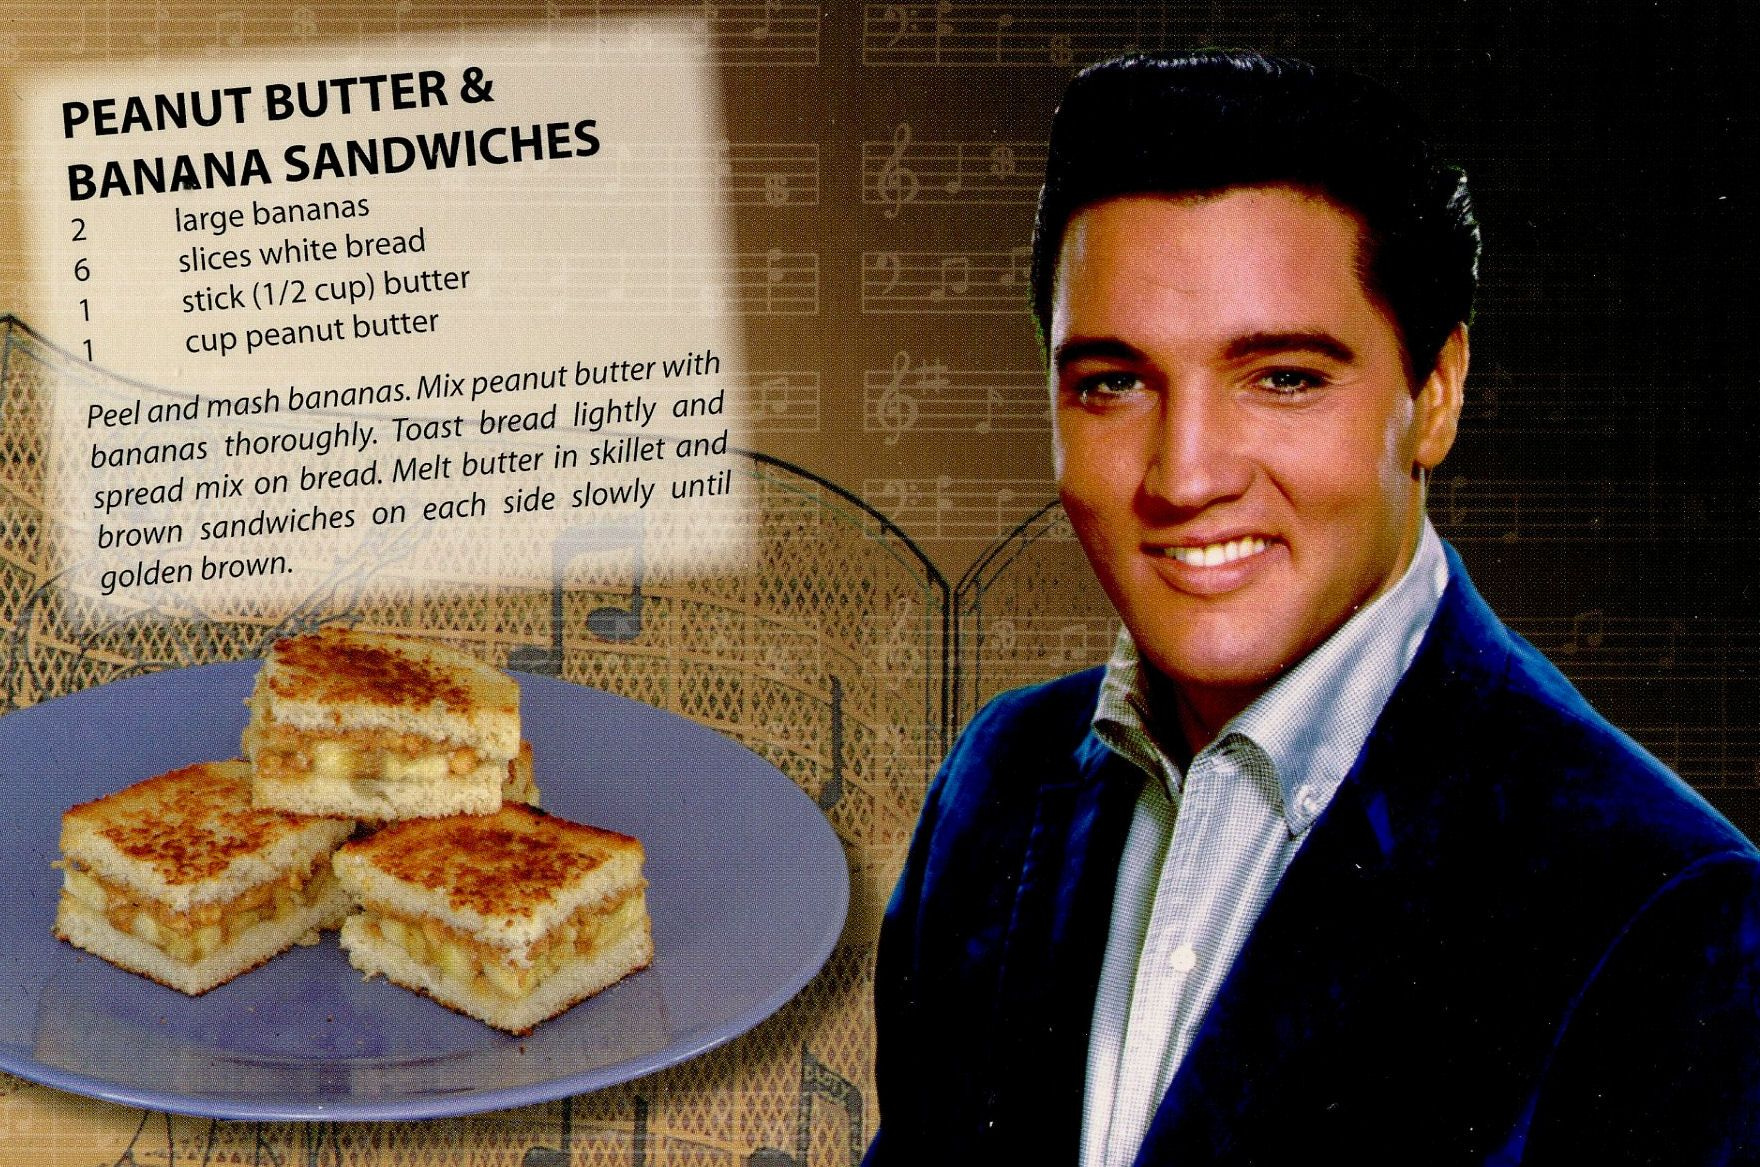 Authentic Recipe From Graceland Elvis The King S Pb Banana Sandwiches Banana Sandwich Peanut Butter Banana Sandwich Elvis Sandwich